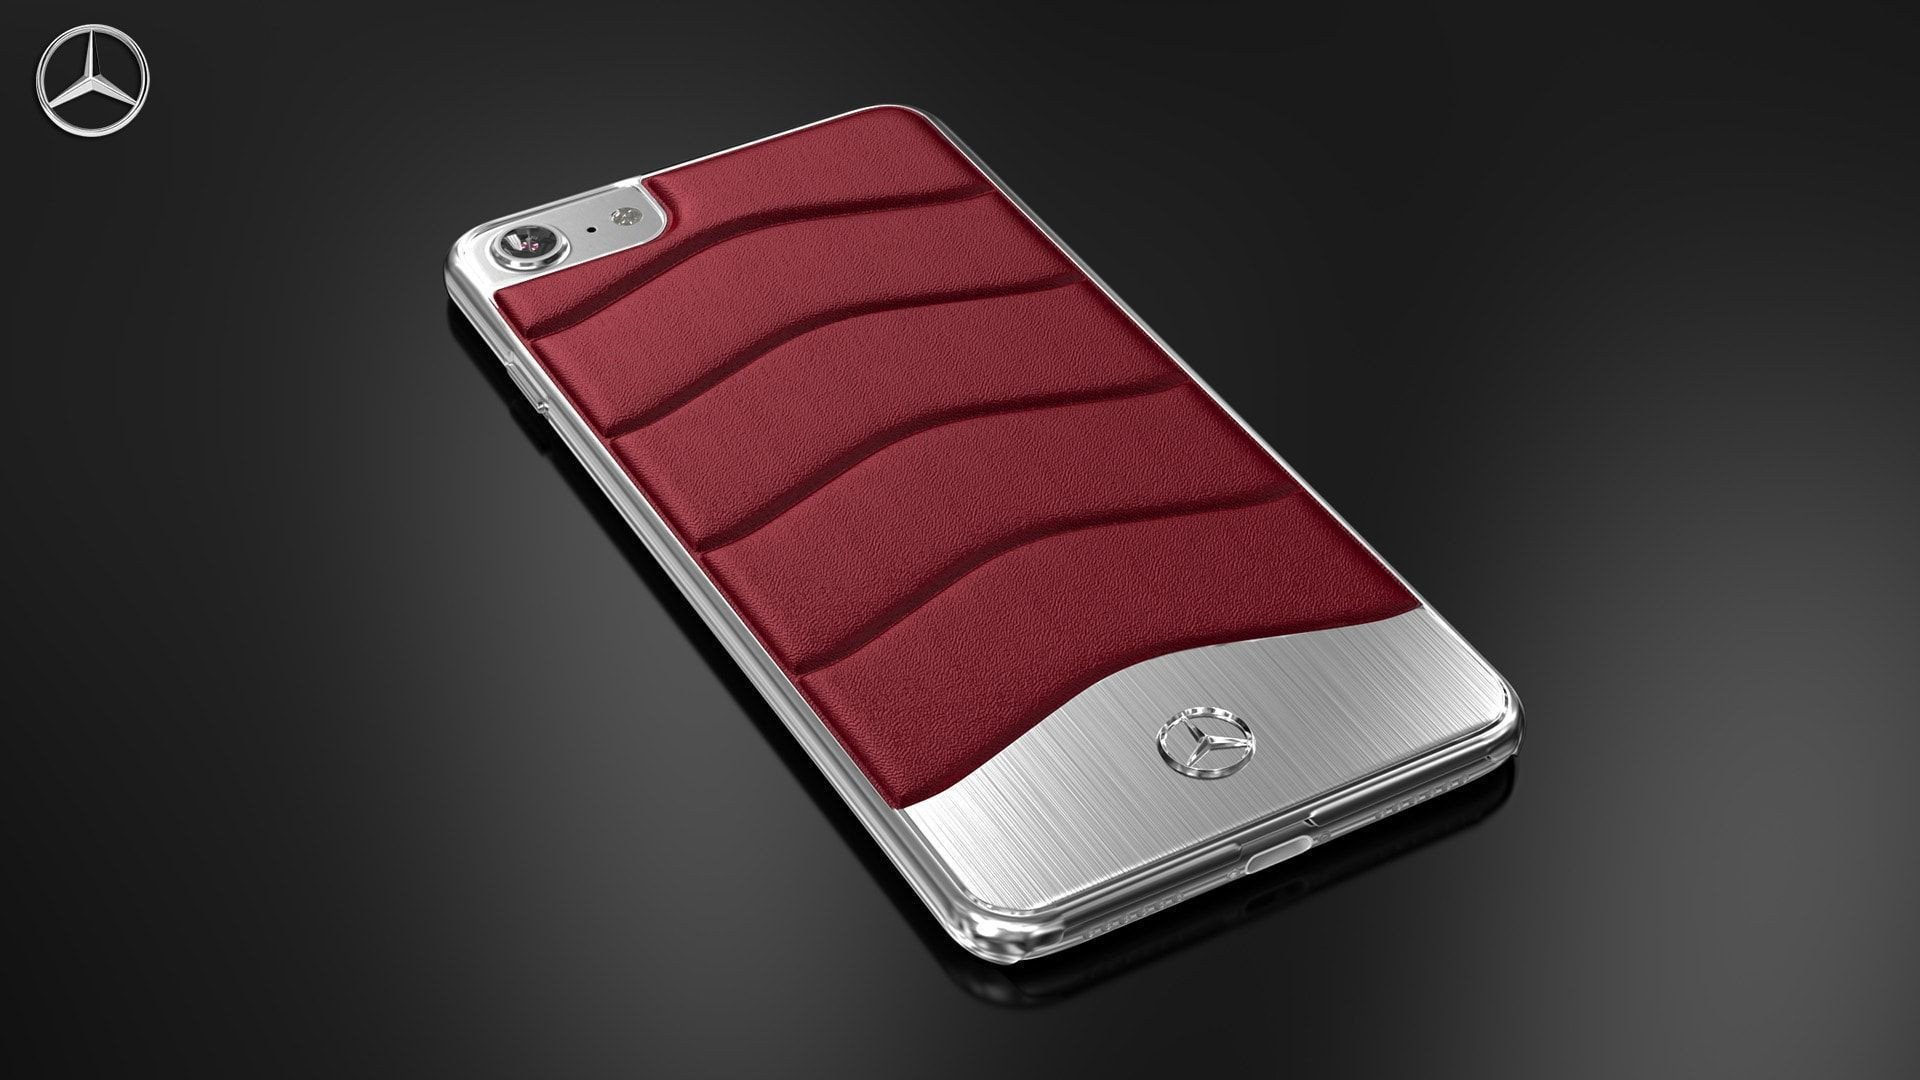 Mercedes benz apple iphone 6 plus 6s plus concept s for Www mercedes benz mobile com iphone